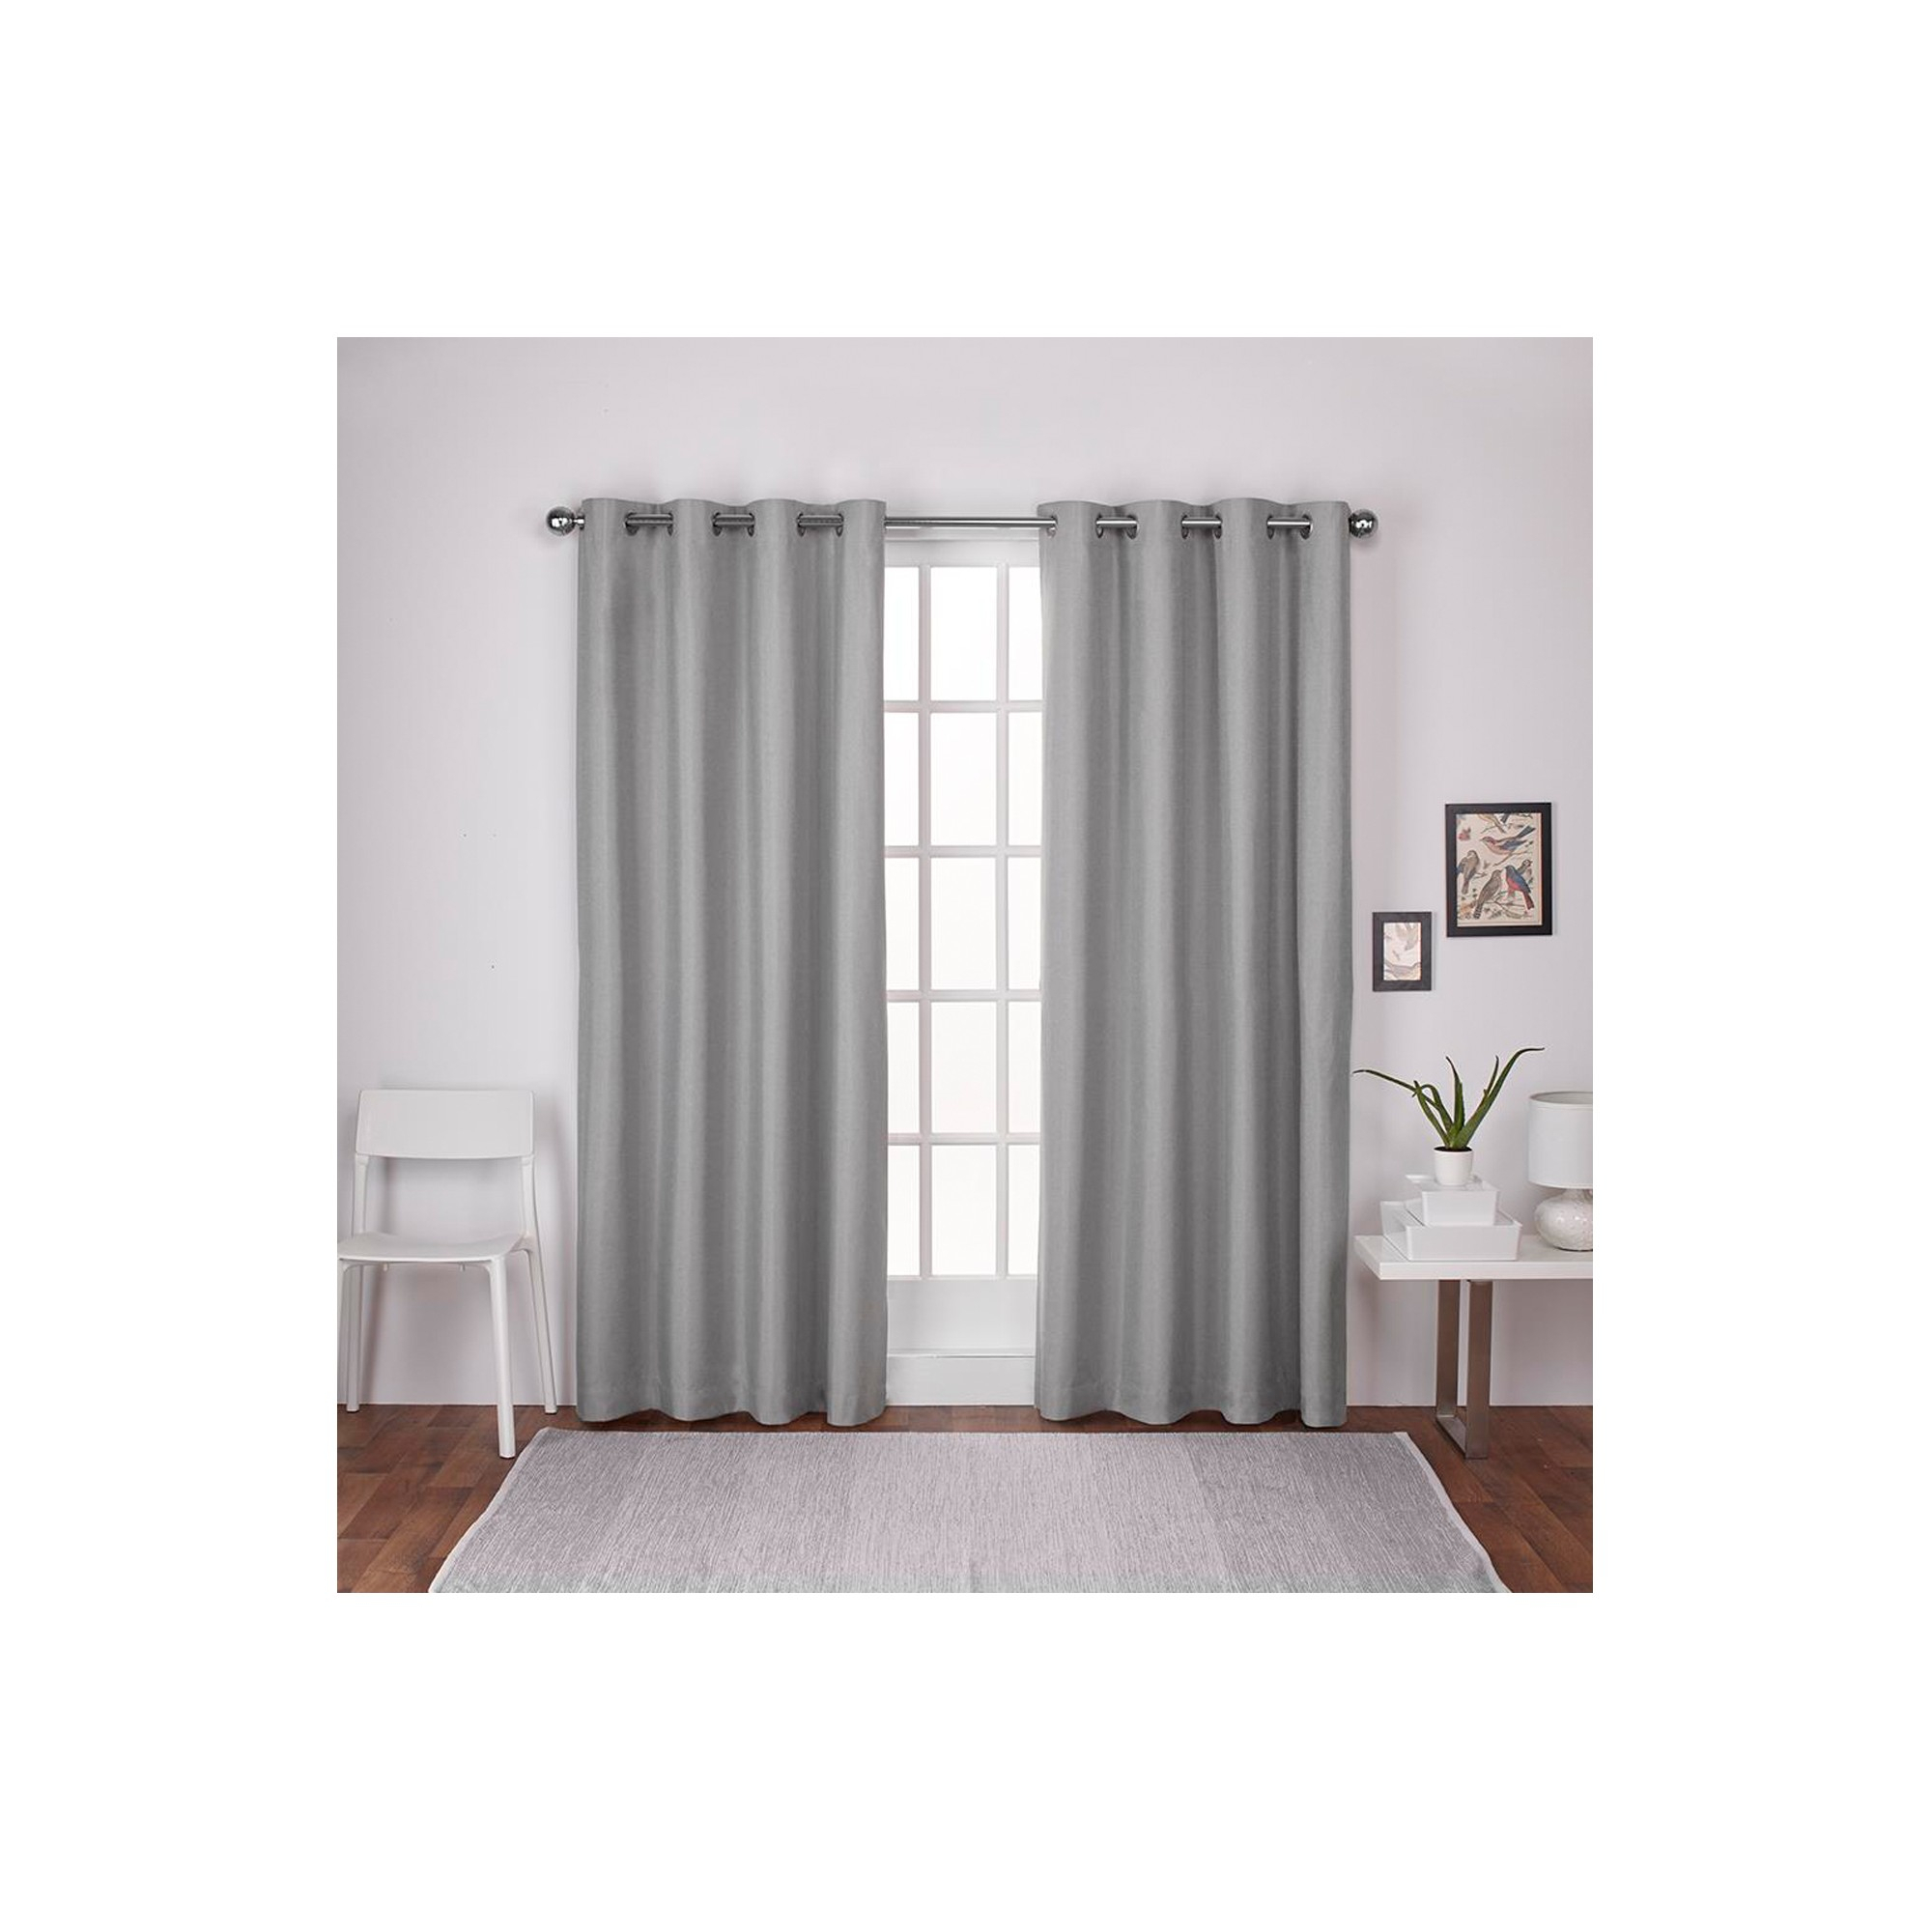 London Thermal Textured Linen Grommet Top Window Curtain With Thermal Textured Linen Grommet Top Curtain Panel Pairs (View 5 of 30)